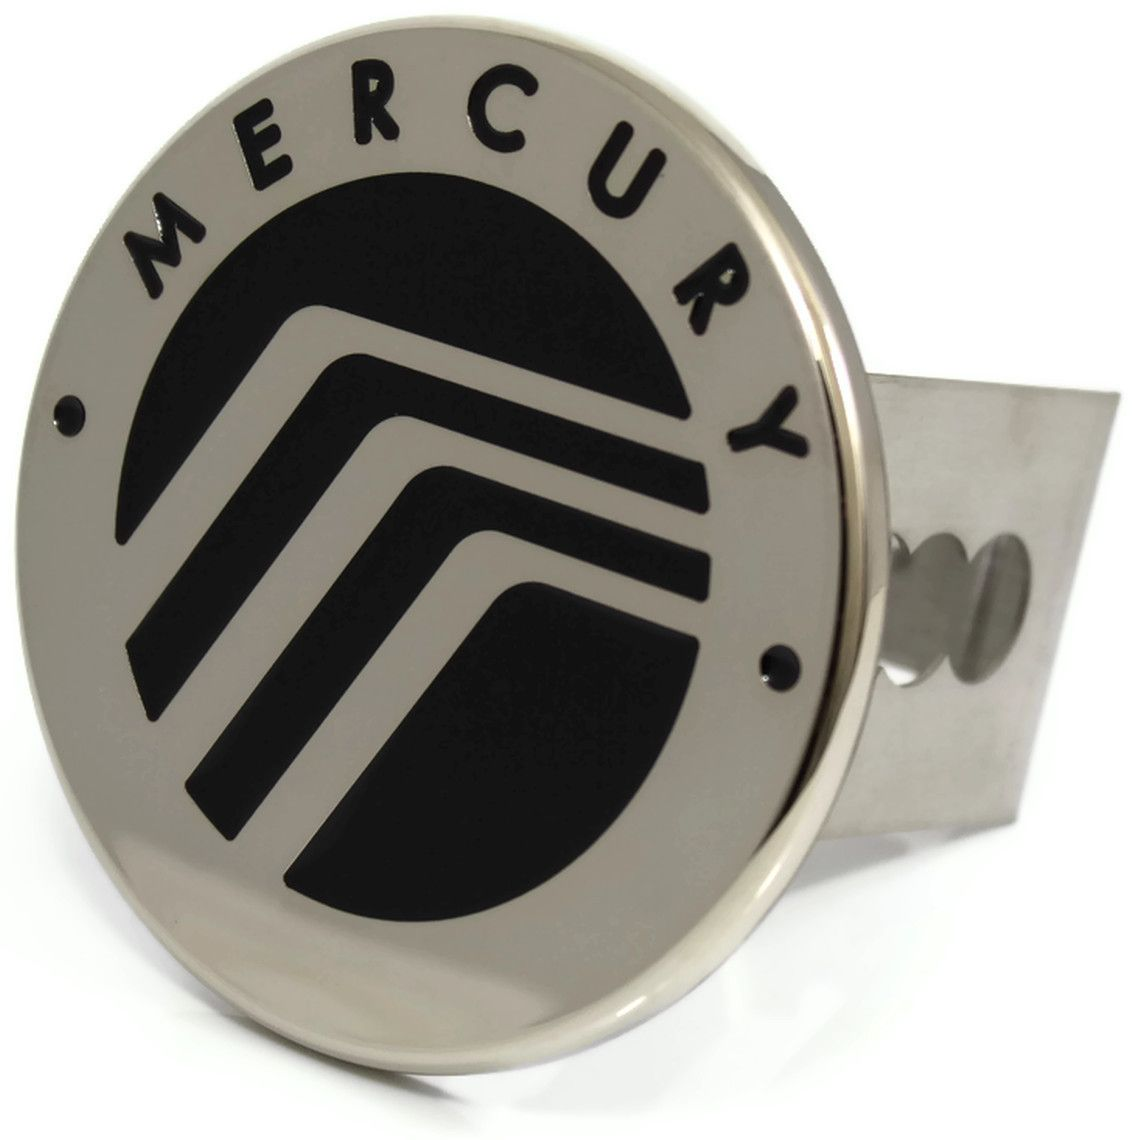 Black Mercury Logo Hitch Cover 2 Hitch Receivers Cover Plug Stainless